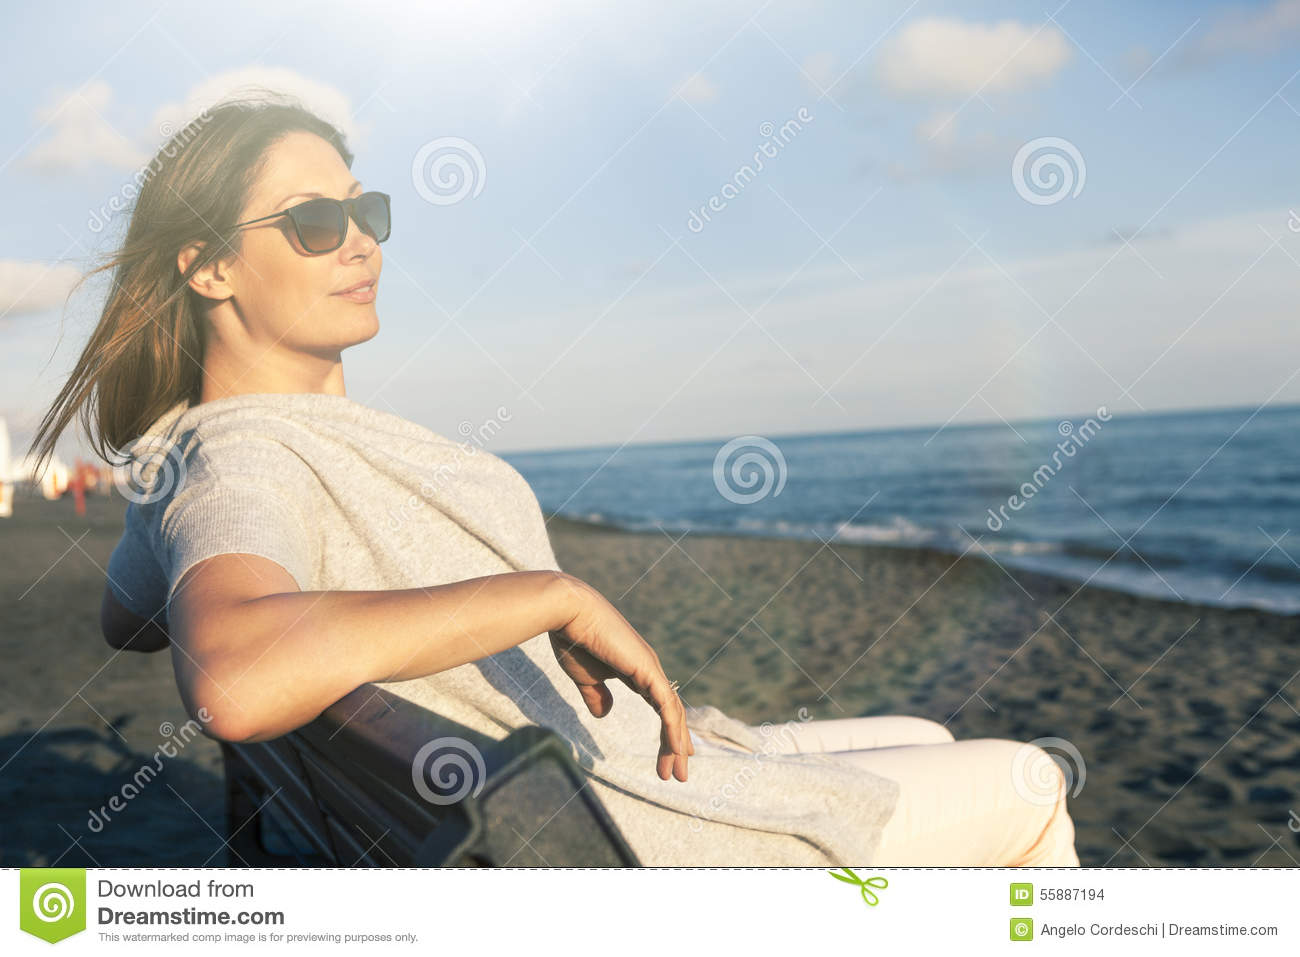 Woman relaxing at the sea dressed in peace sitting on the bench on the beach. Sunglasses